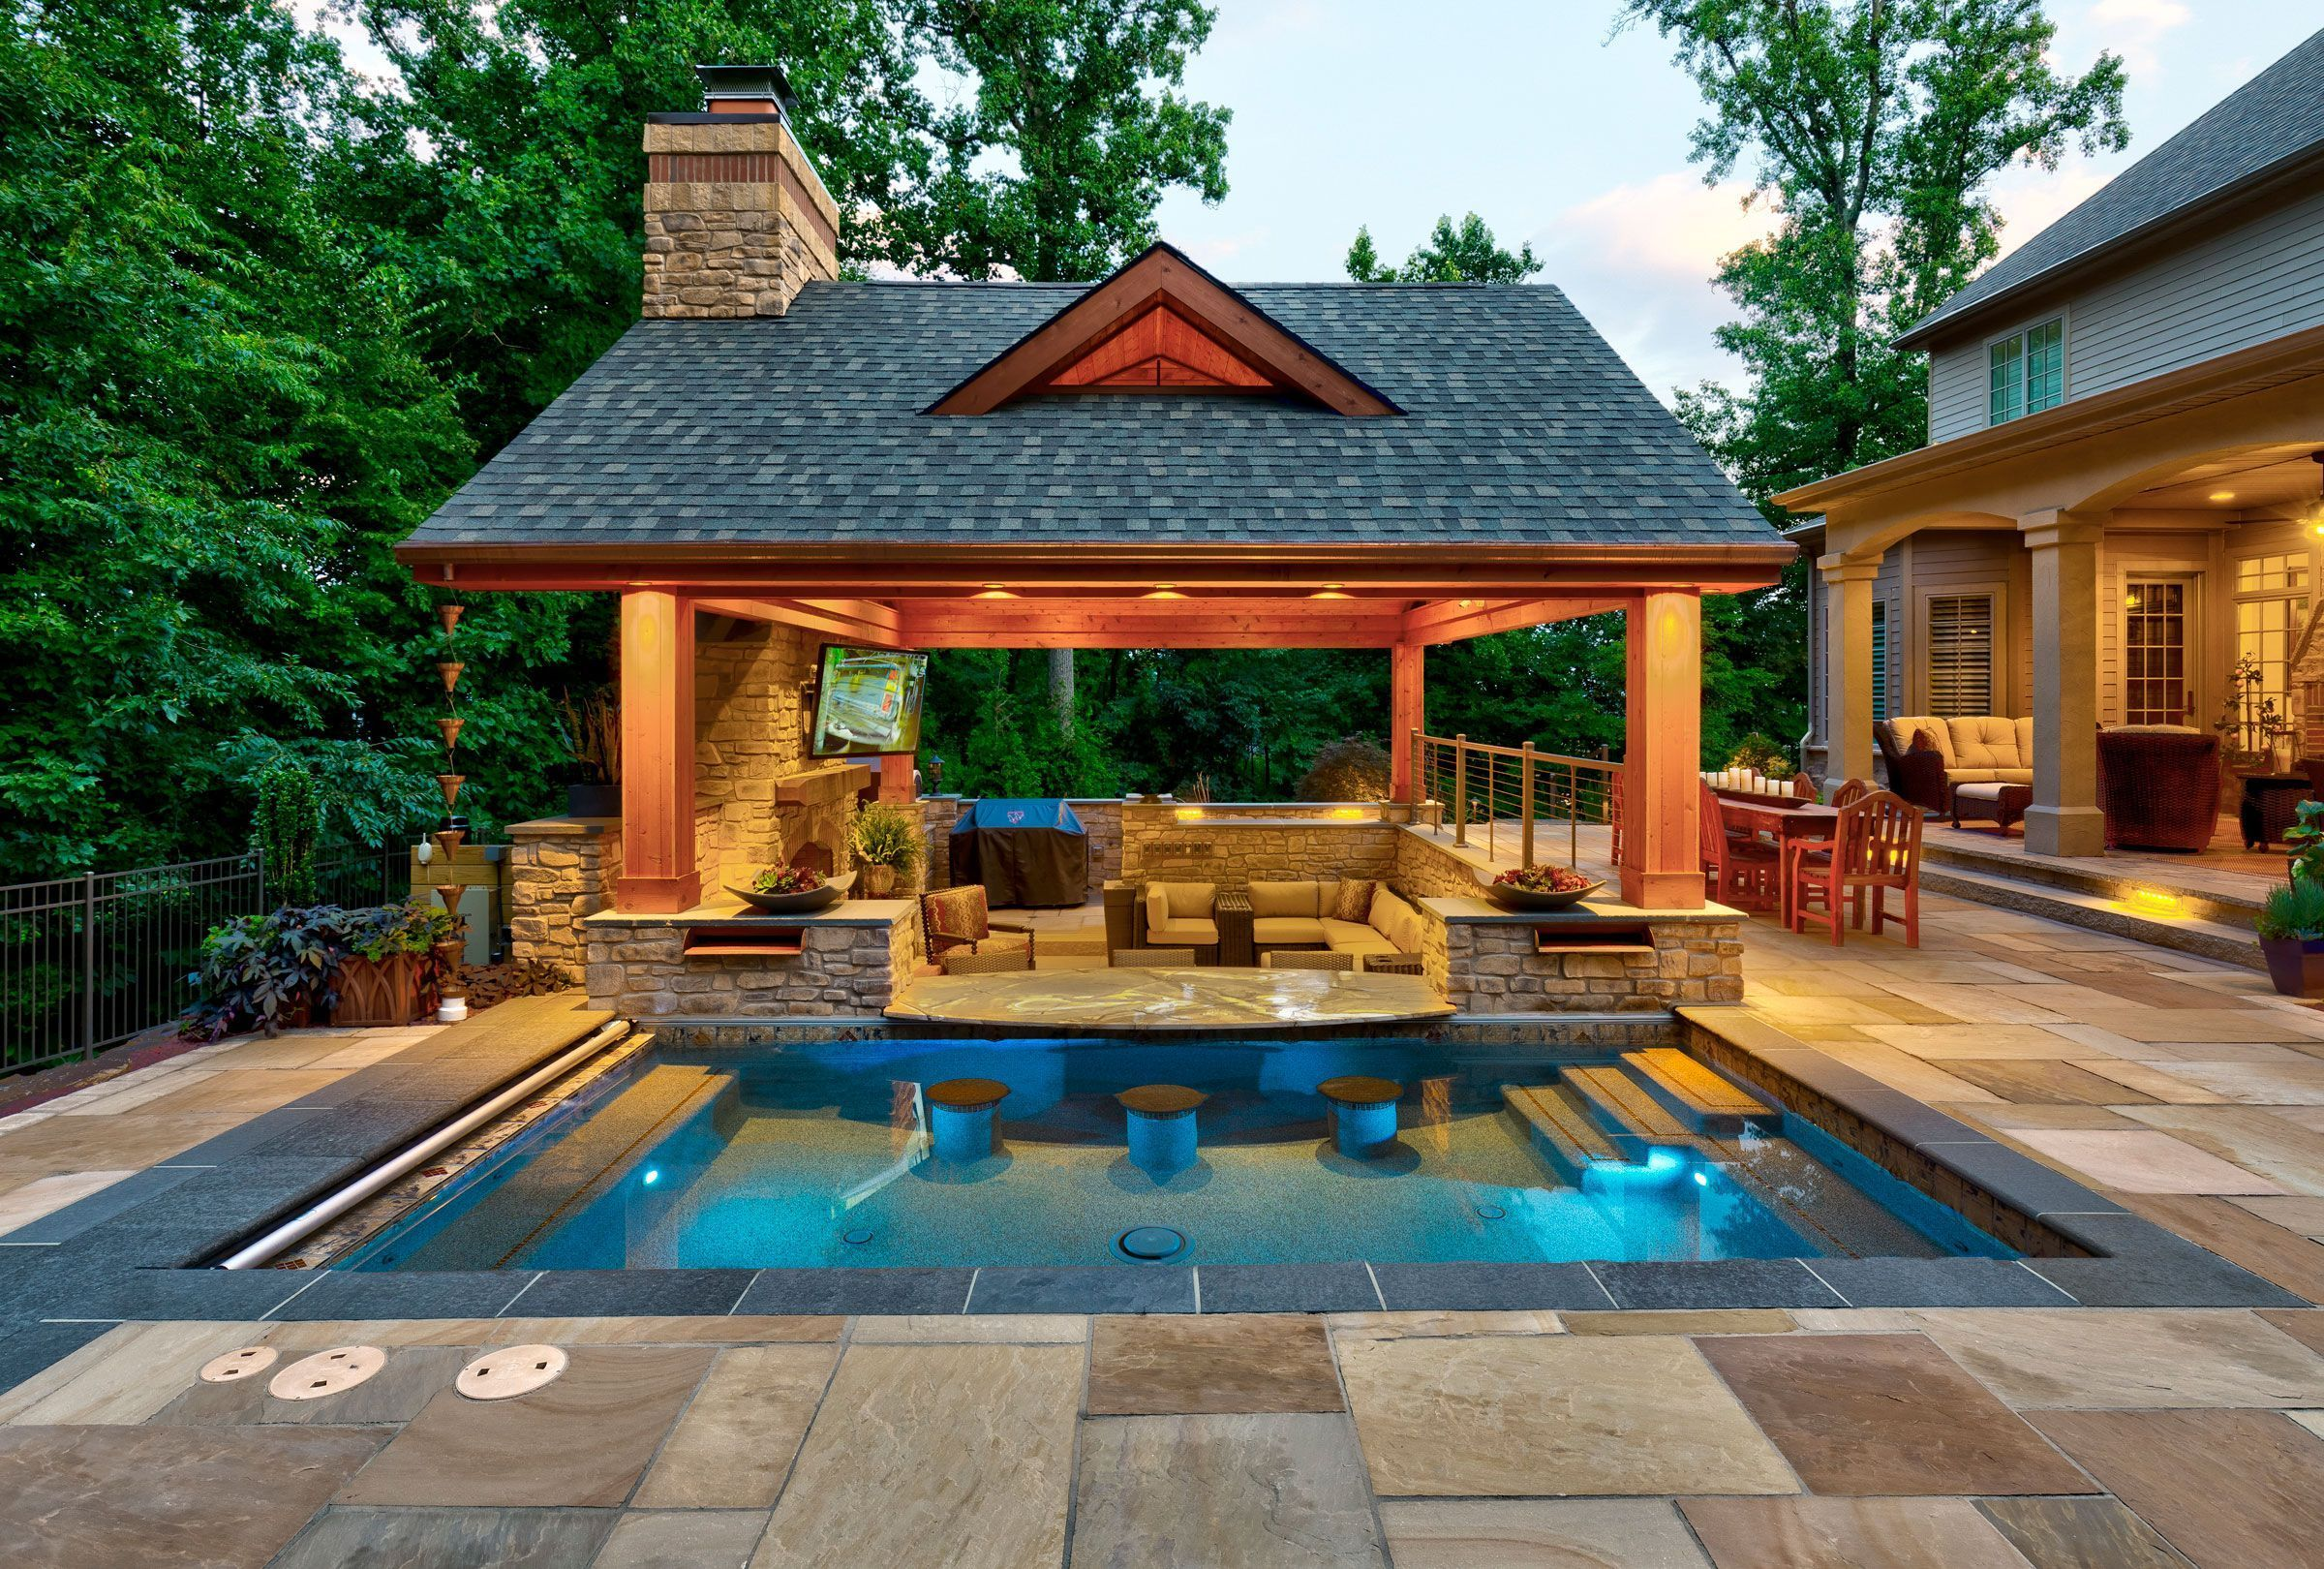 Paradise Outdoor Kitchens For Entertaining Guests Outdoor Living